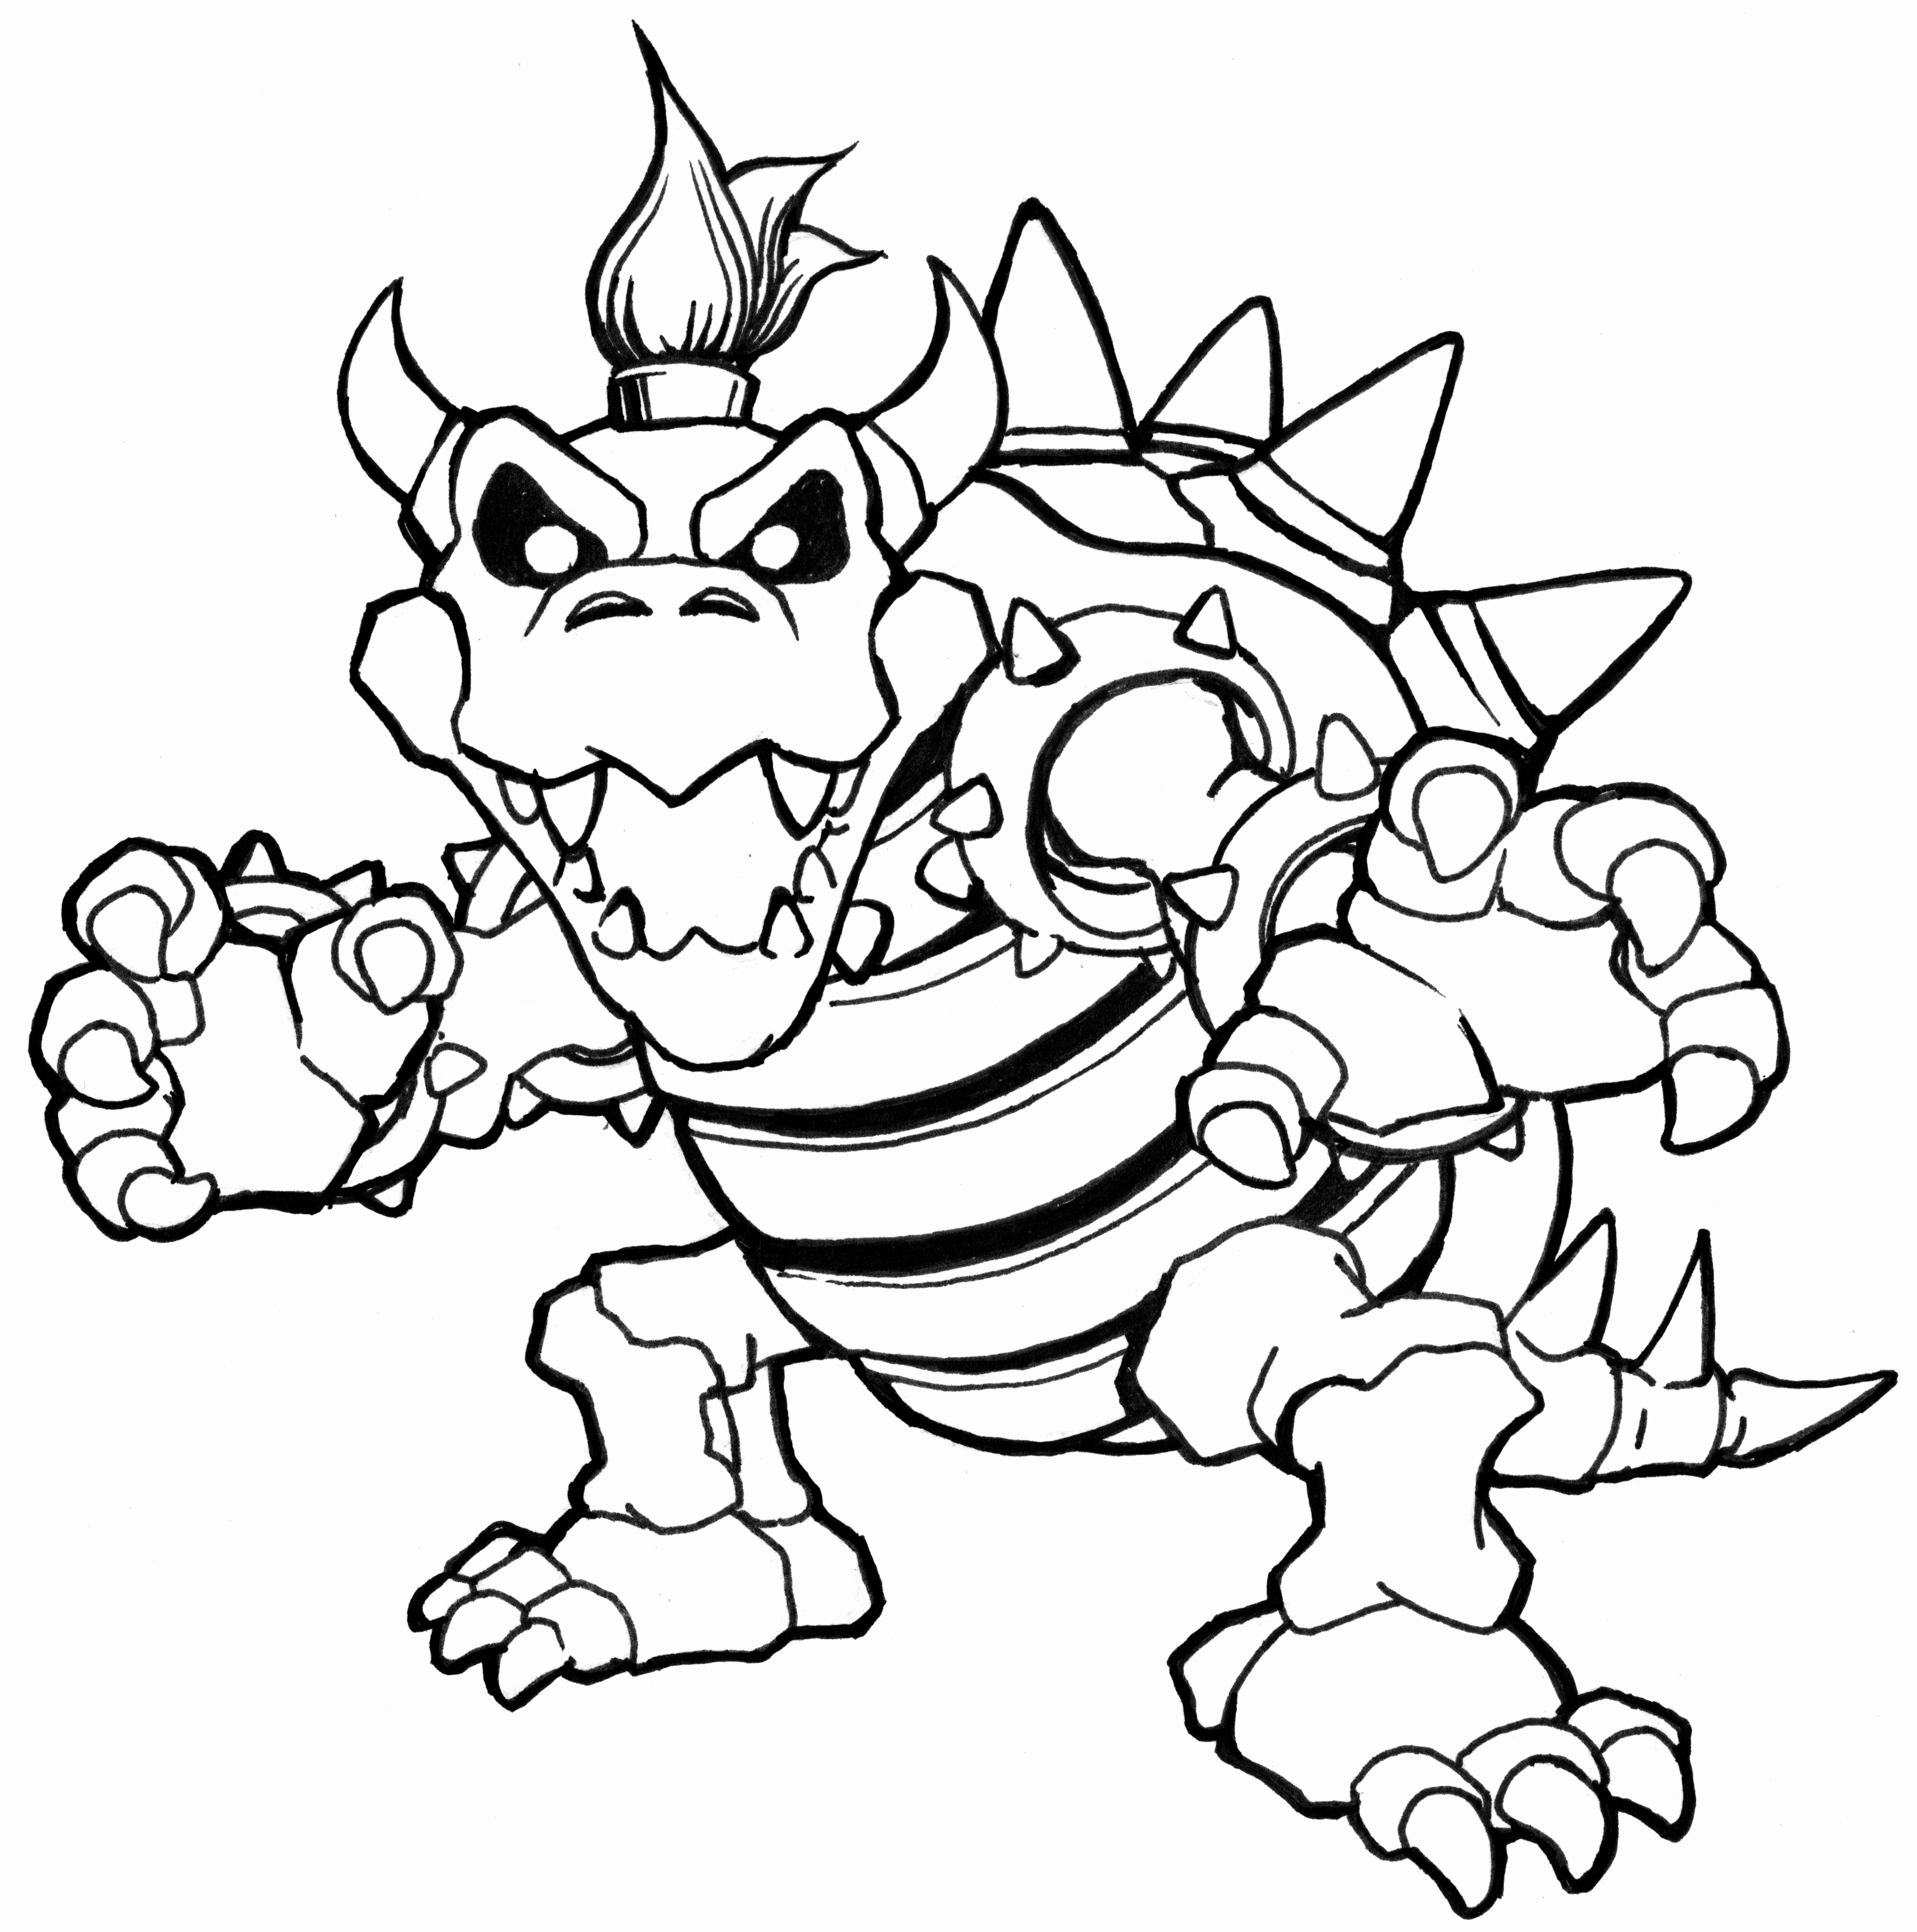 picture of bowser bowser coloring page for kids coloring pages cartoon bowser of picture